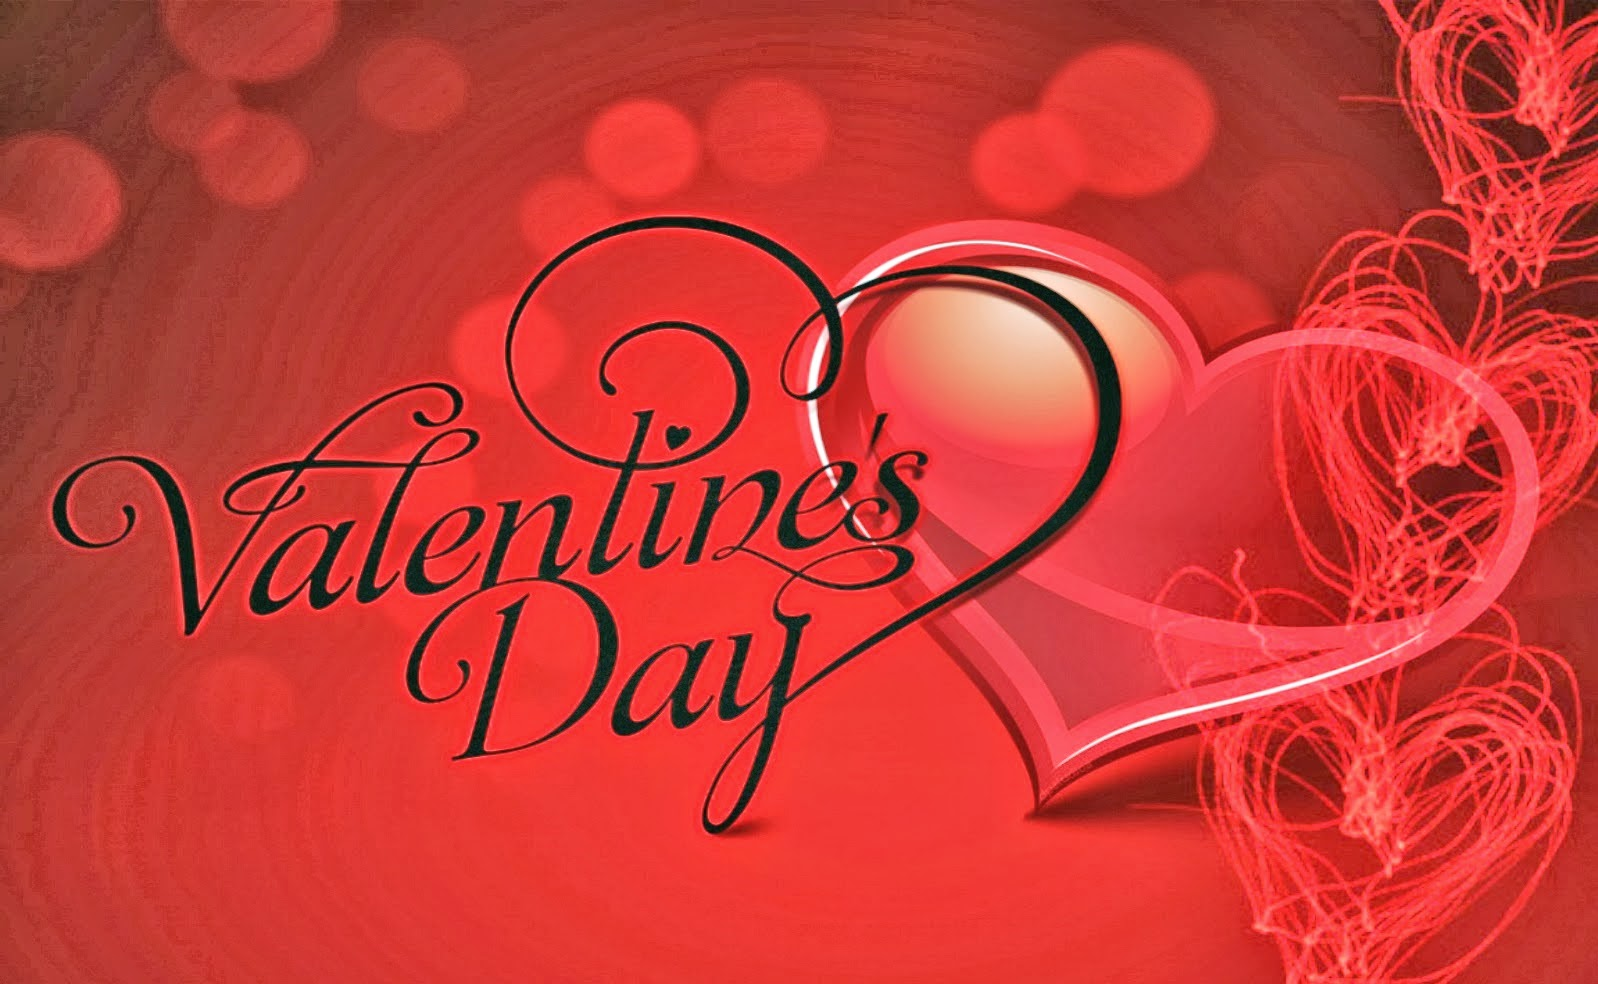 valentines day greetings 2015